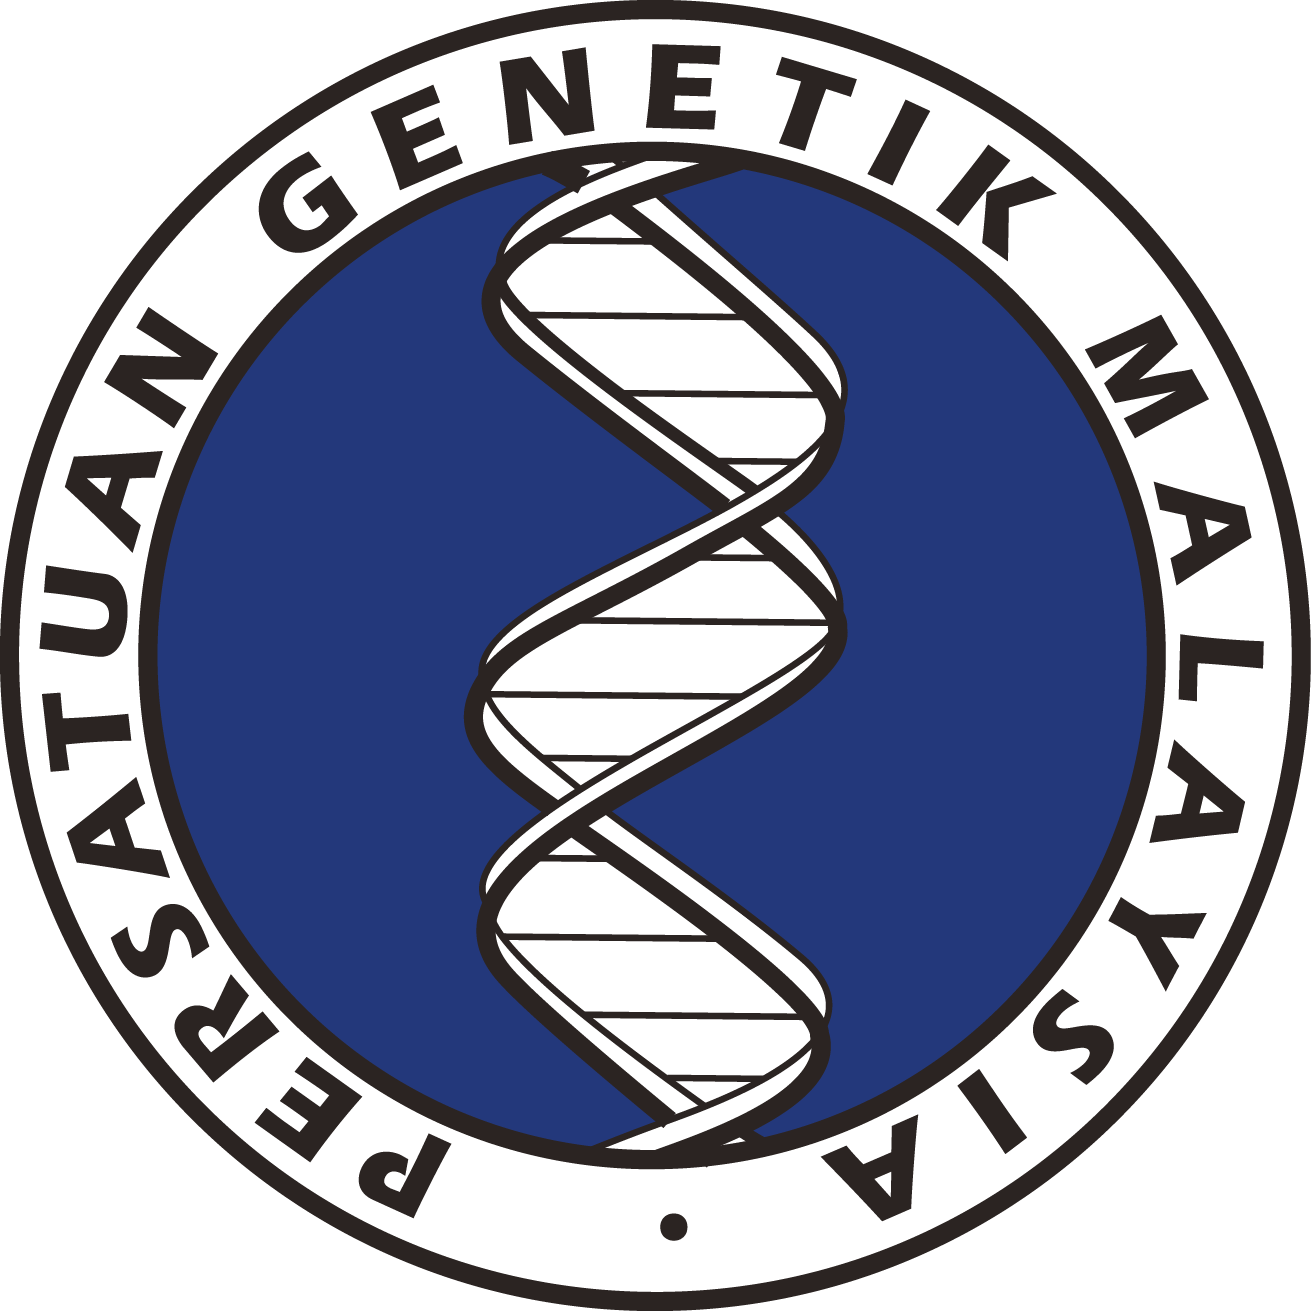 Persatuan Genetik Malaysia